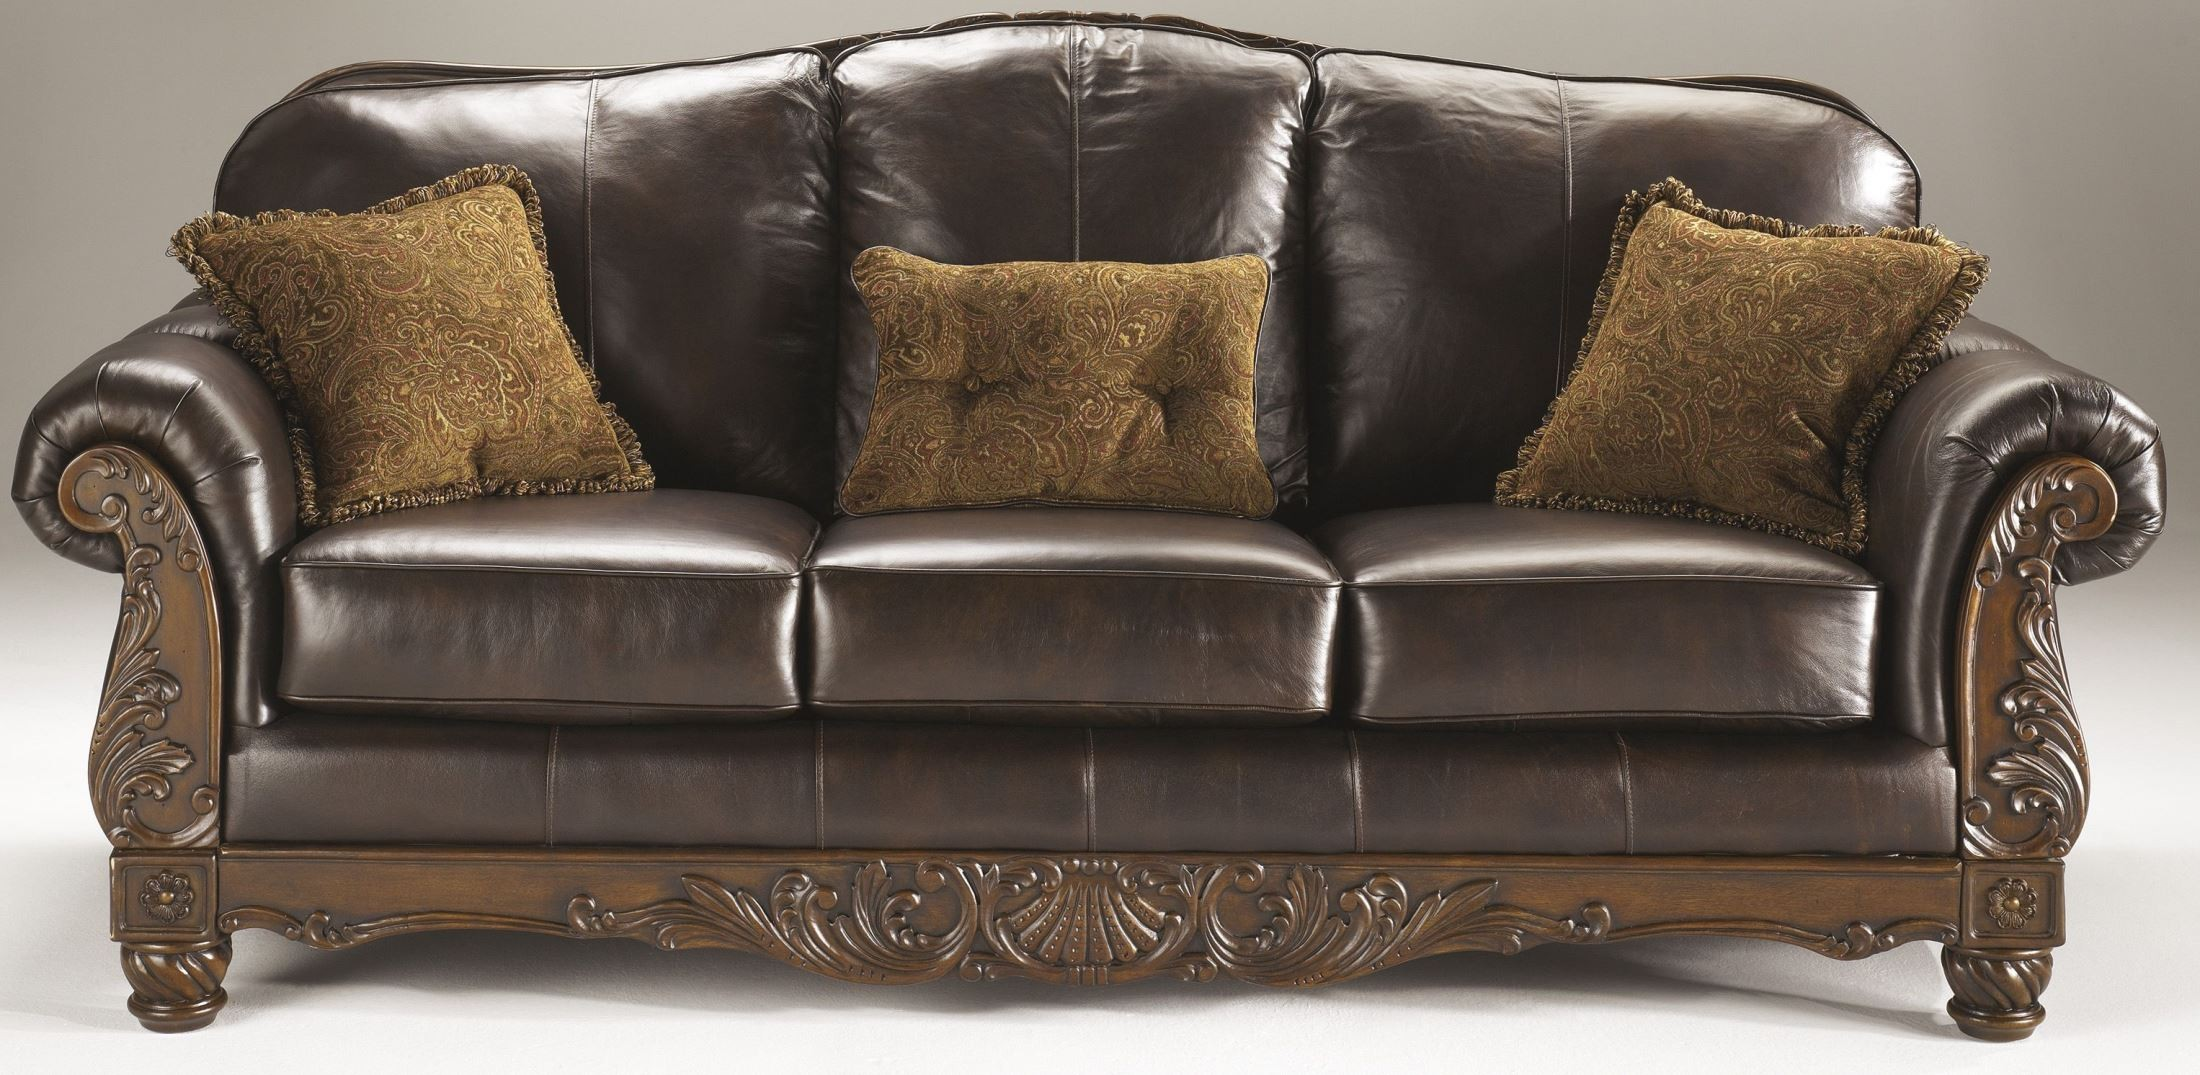 North Shore Dark Brown Sofa From Ashley (2260338